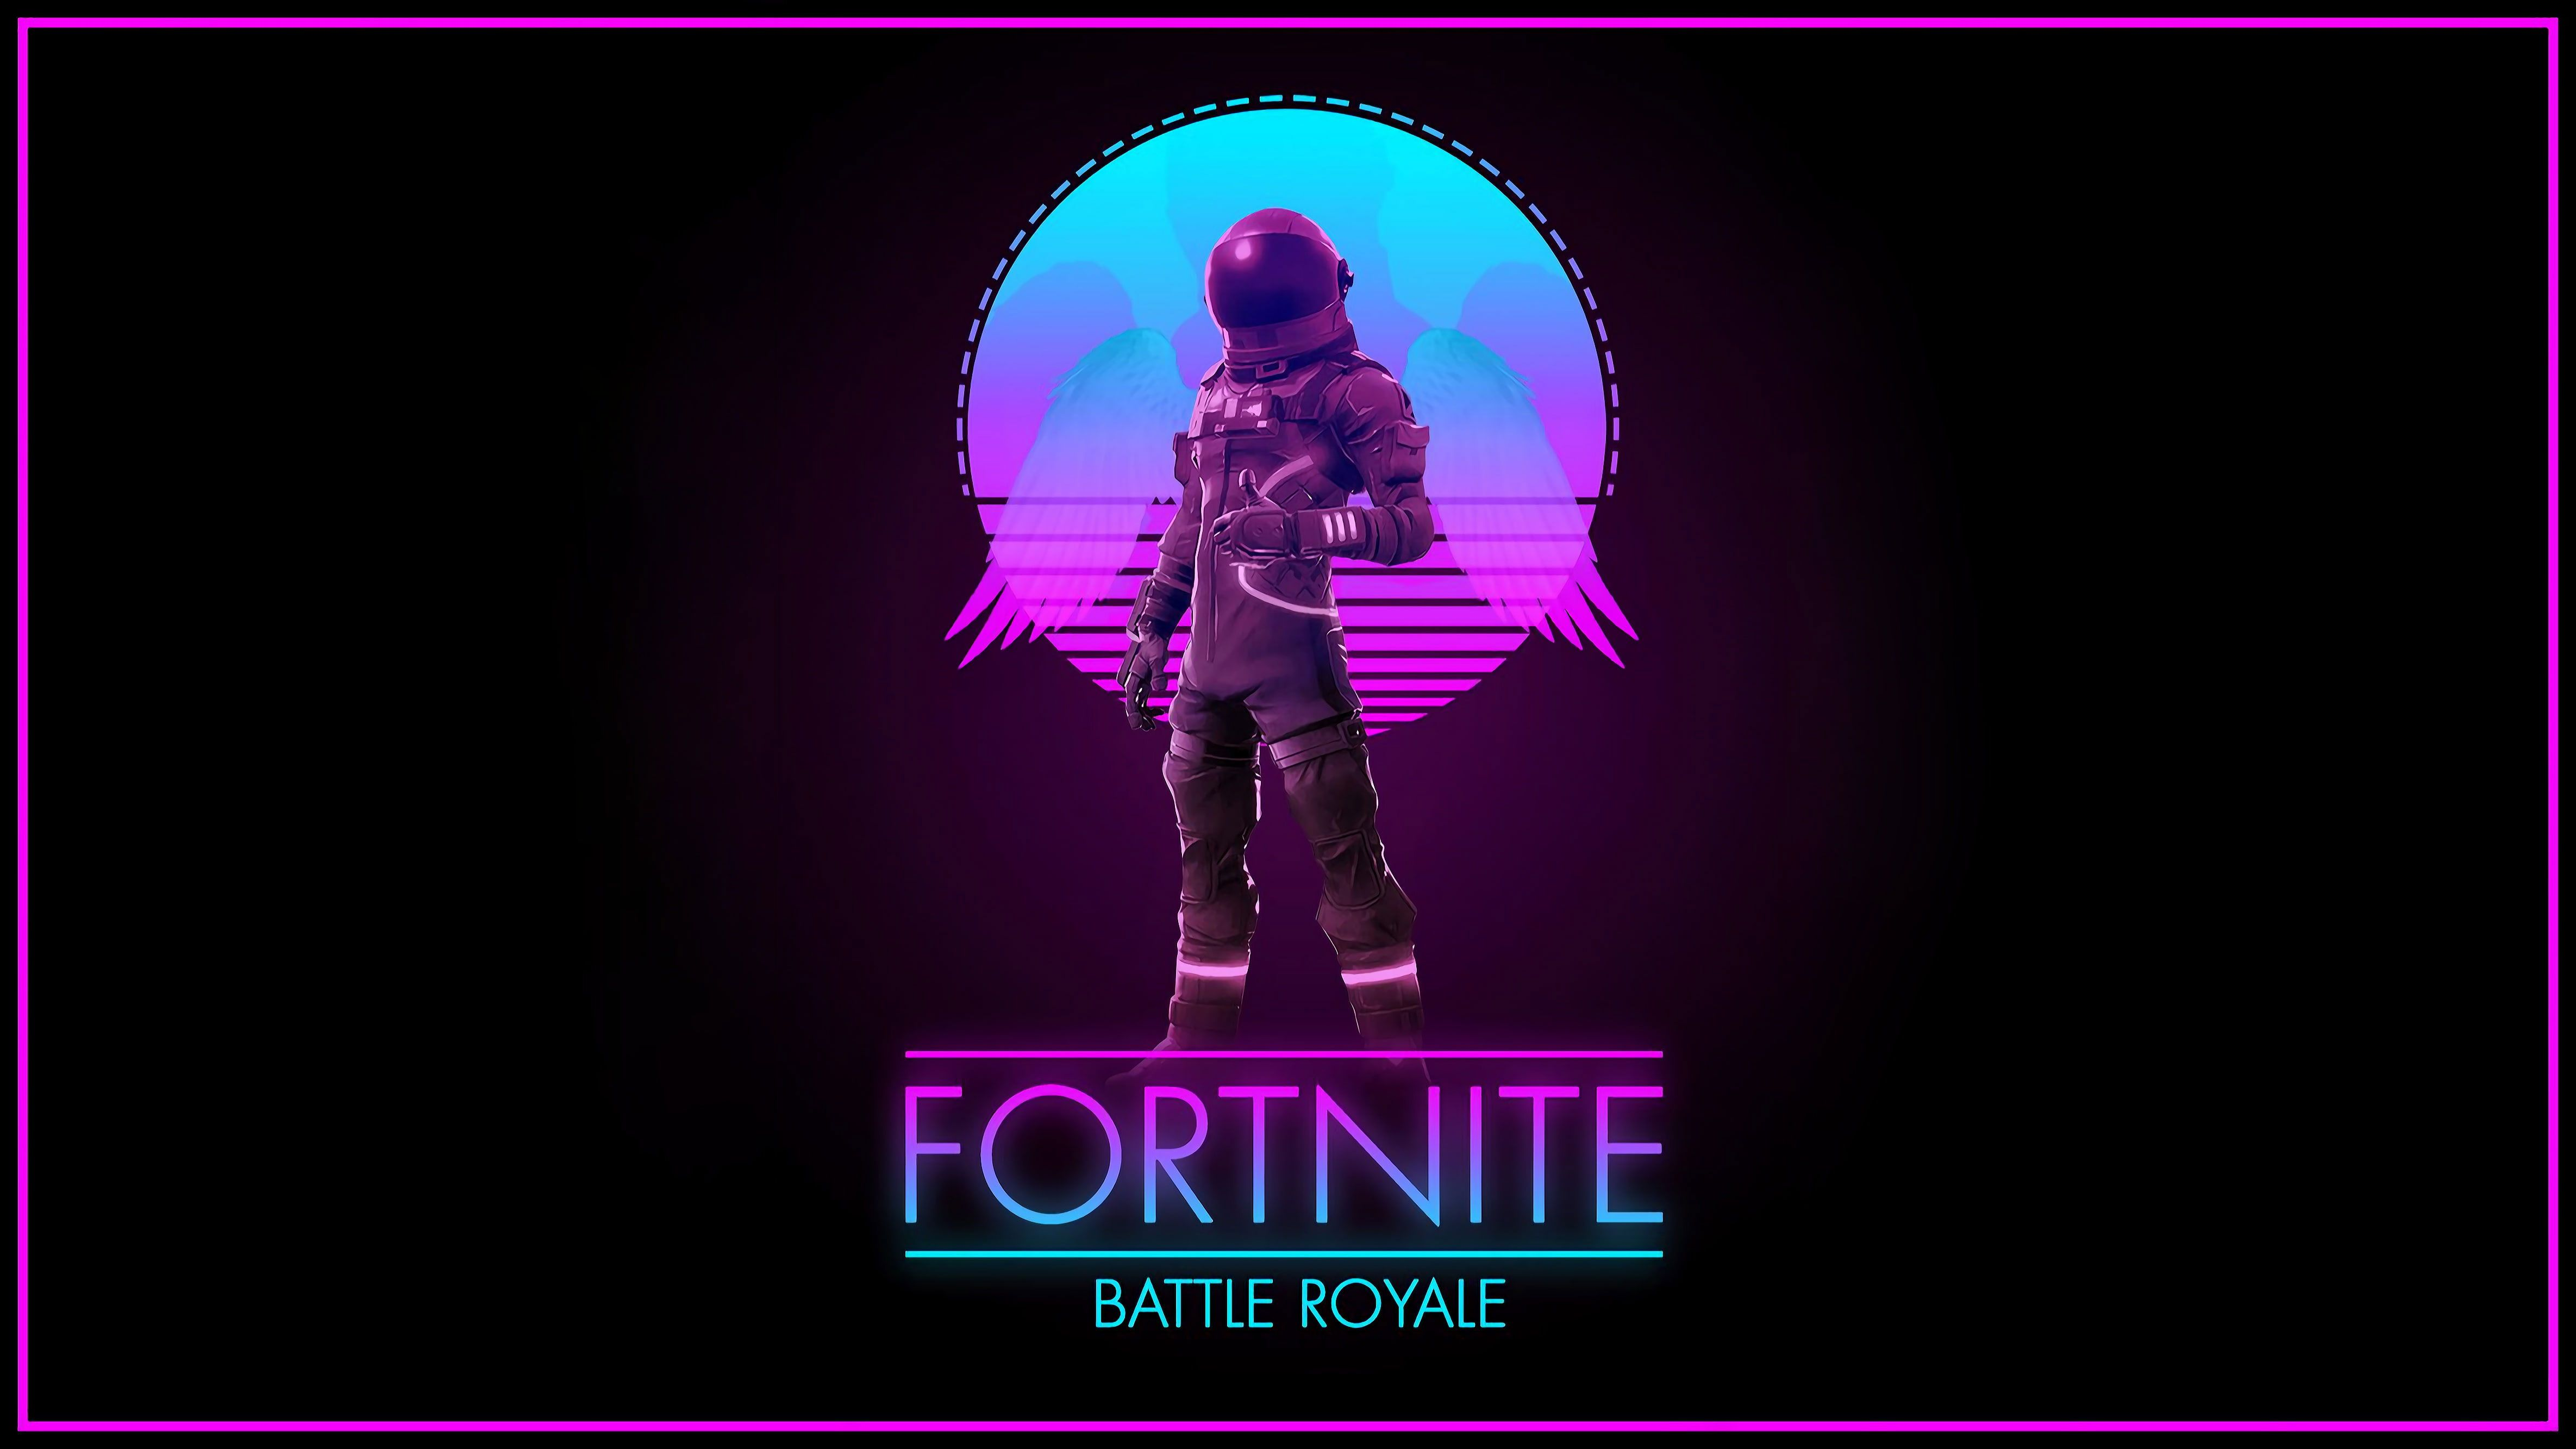 Fortnite Wallpaper Music Background Art Synth Retrowave Battle Royale In 2020 Cool Backgrounds Synthwave Hd Wallpaper